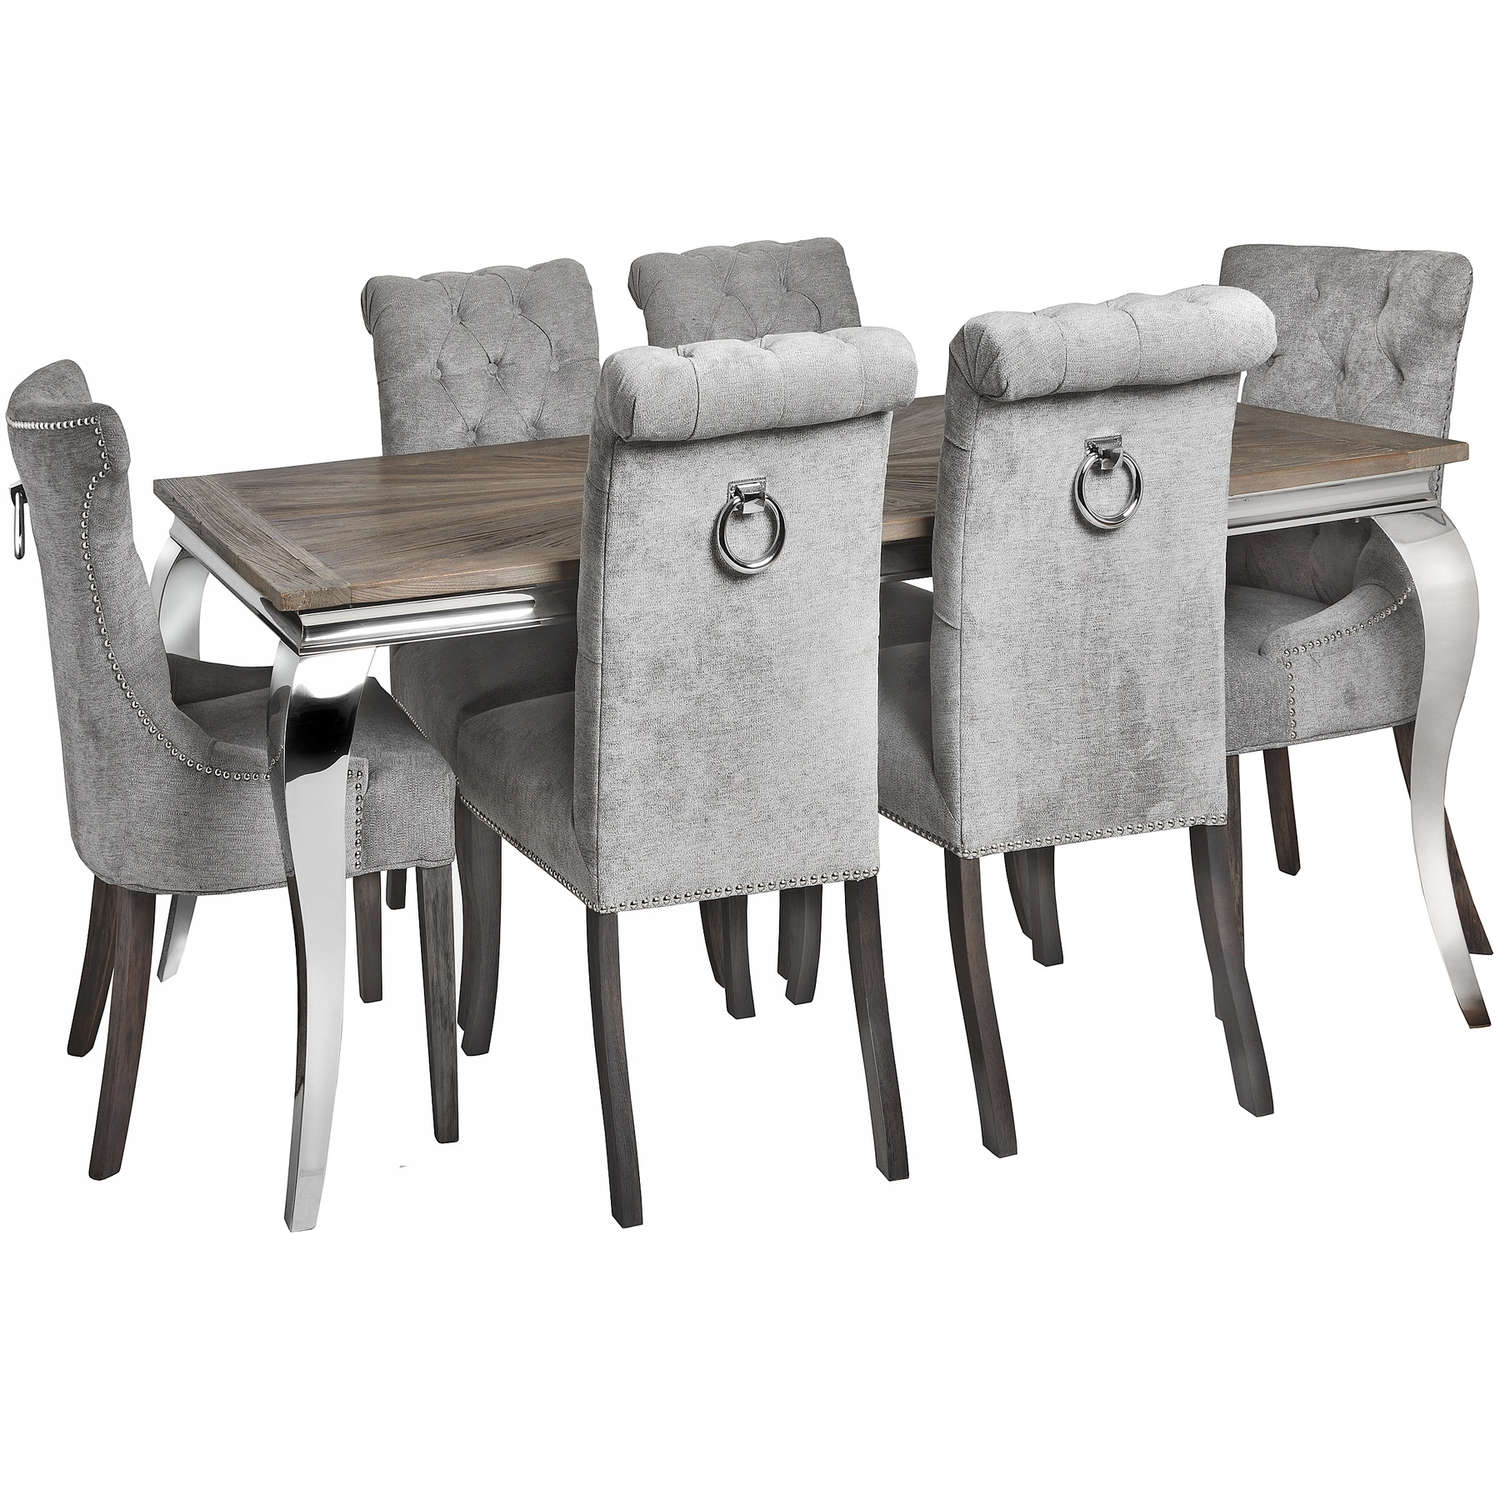 Silver Roll Top Dining Chair With Ring Pull - Image 6